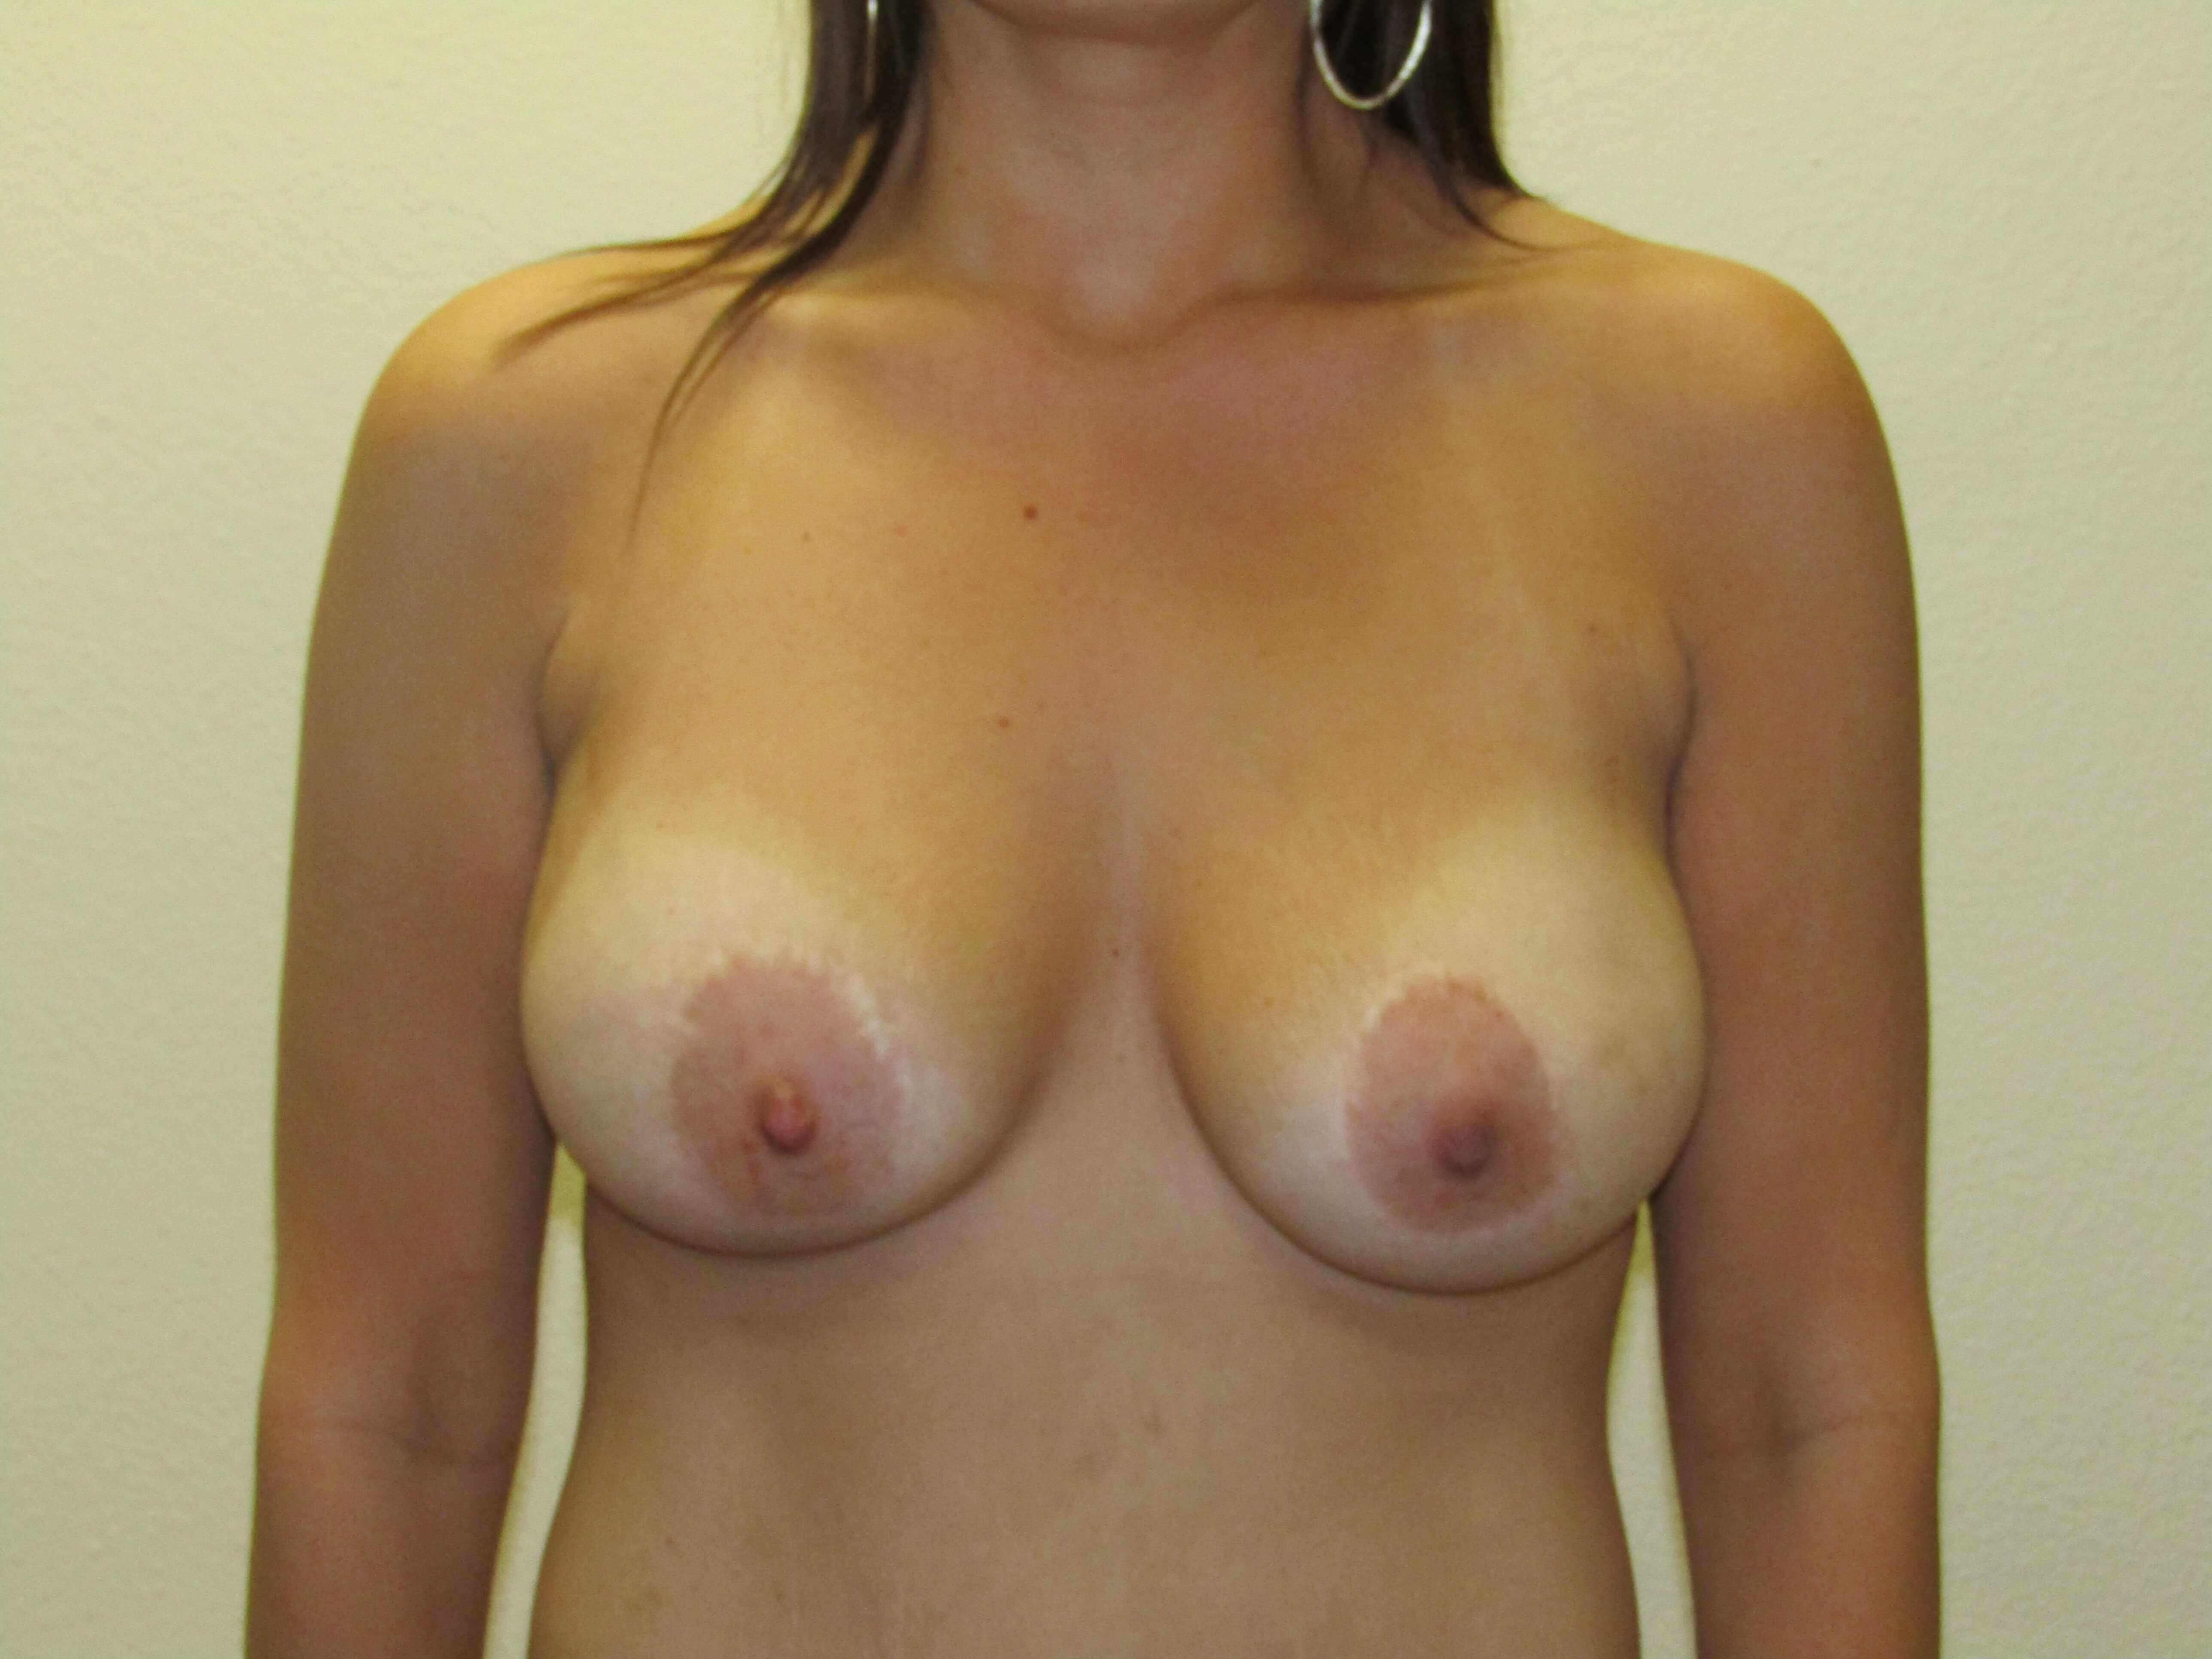 Breast augmentation minilift After